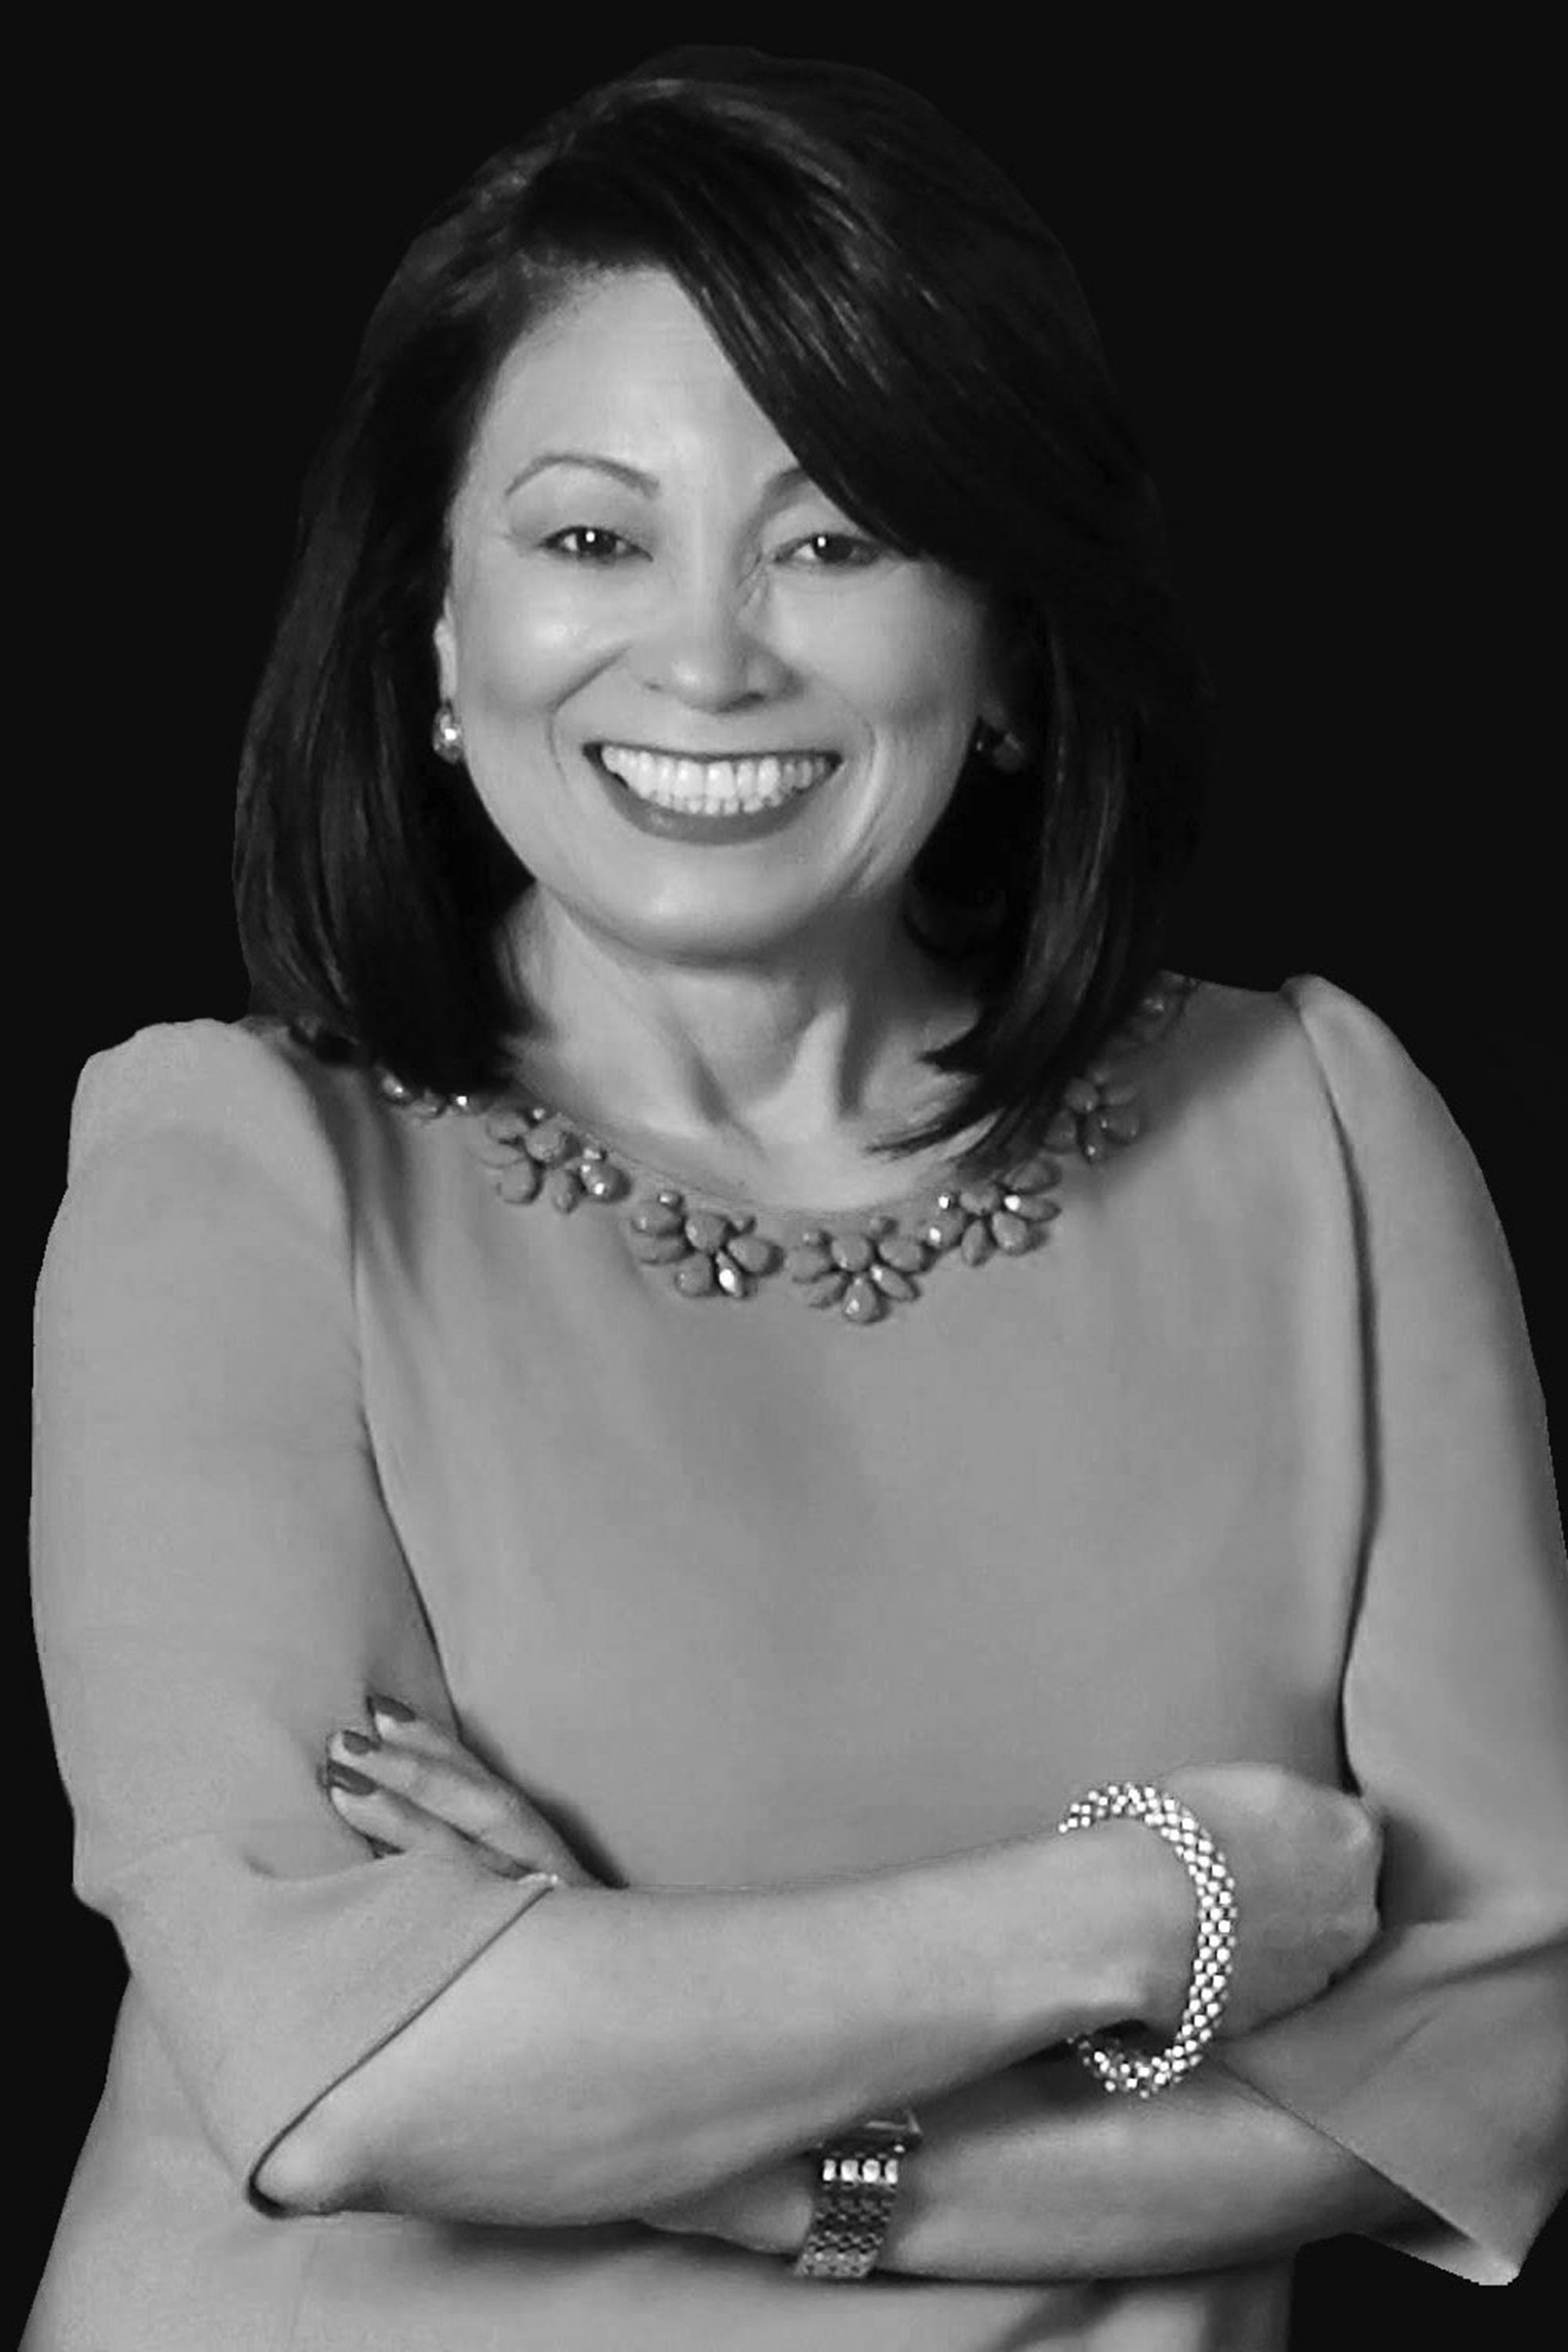 """<p><strong data-redactor-tag=""""strong"""" data-verified=""""redactor"""">Dr. Gloria Bonilla-Santiago, 63, Founder of&nbsp&#x3B; <a href=""""http://www.leapacademycharter.org"""" target=""""_blank"""" data-tracking-id=""""recirc-text-link"""">The LEAP&nbsp&#x3B;(Leadership, Education, and Partnership) Academy University Charter School</a>&nbsp&#x3B;</strong></p><p>""""At this age, I celebrate a 25-year legacy of sending kids to college with a 100% graduation rate for all my classes. This is my life's work, and this is the best age of all because I've been able to live through&nbsp&#x3B;the transformation of this project and now I get to look back and see the success of the students in action.""""</p><p><span class=""""redactor-invisible-space"""" data-verified=""""redactor"""" data-redactor-tag=""""span"""" data-redactor-class=""""redactor-invisible-space""""></span><br></p>"""